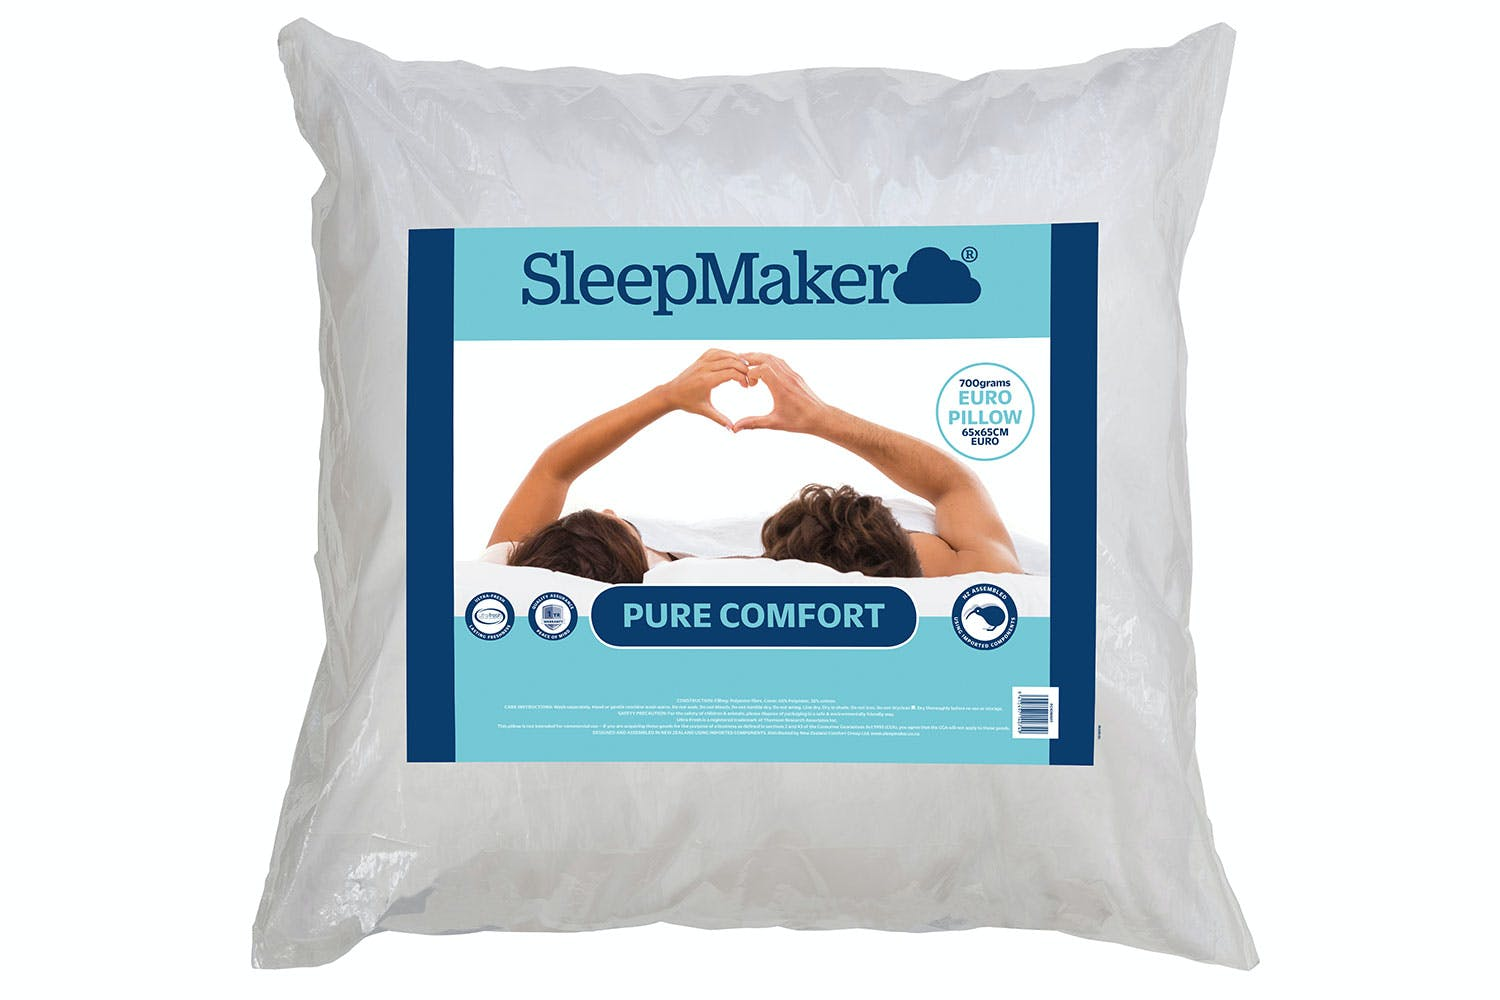 allerease wid jsp sharpen pillow prd op pk pillows allergy protection product euro hei